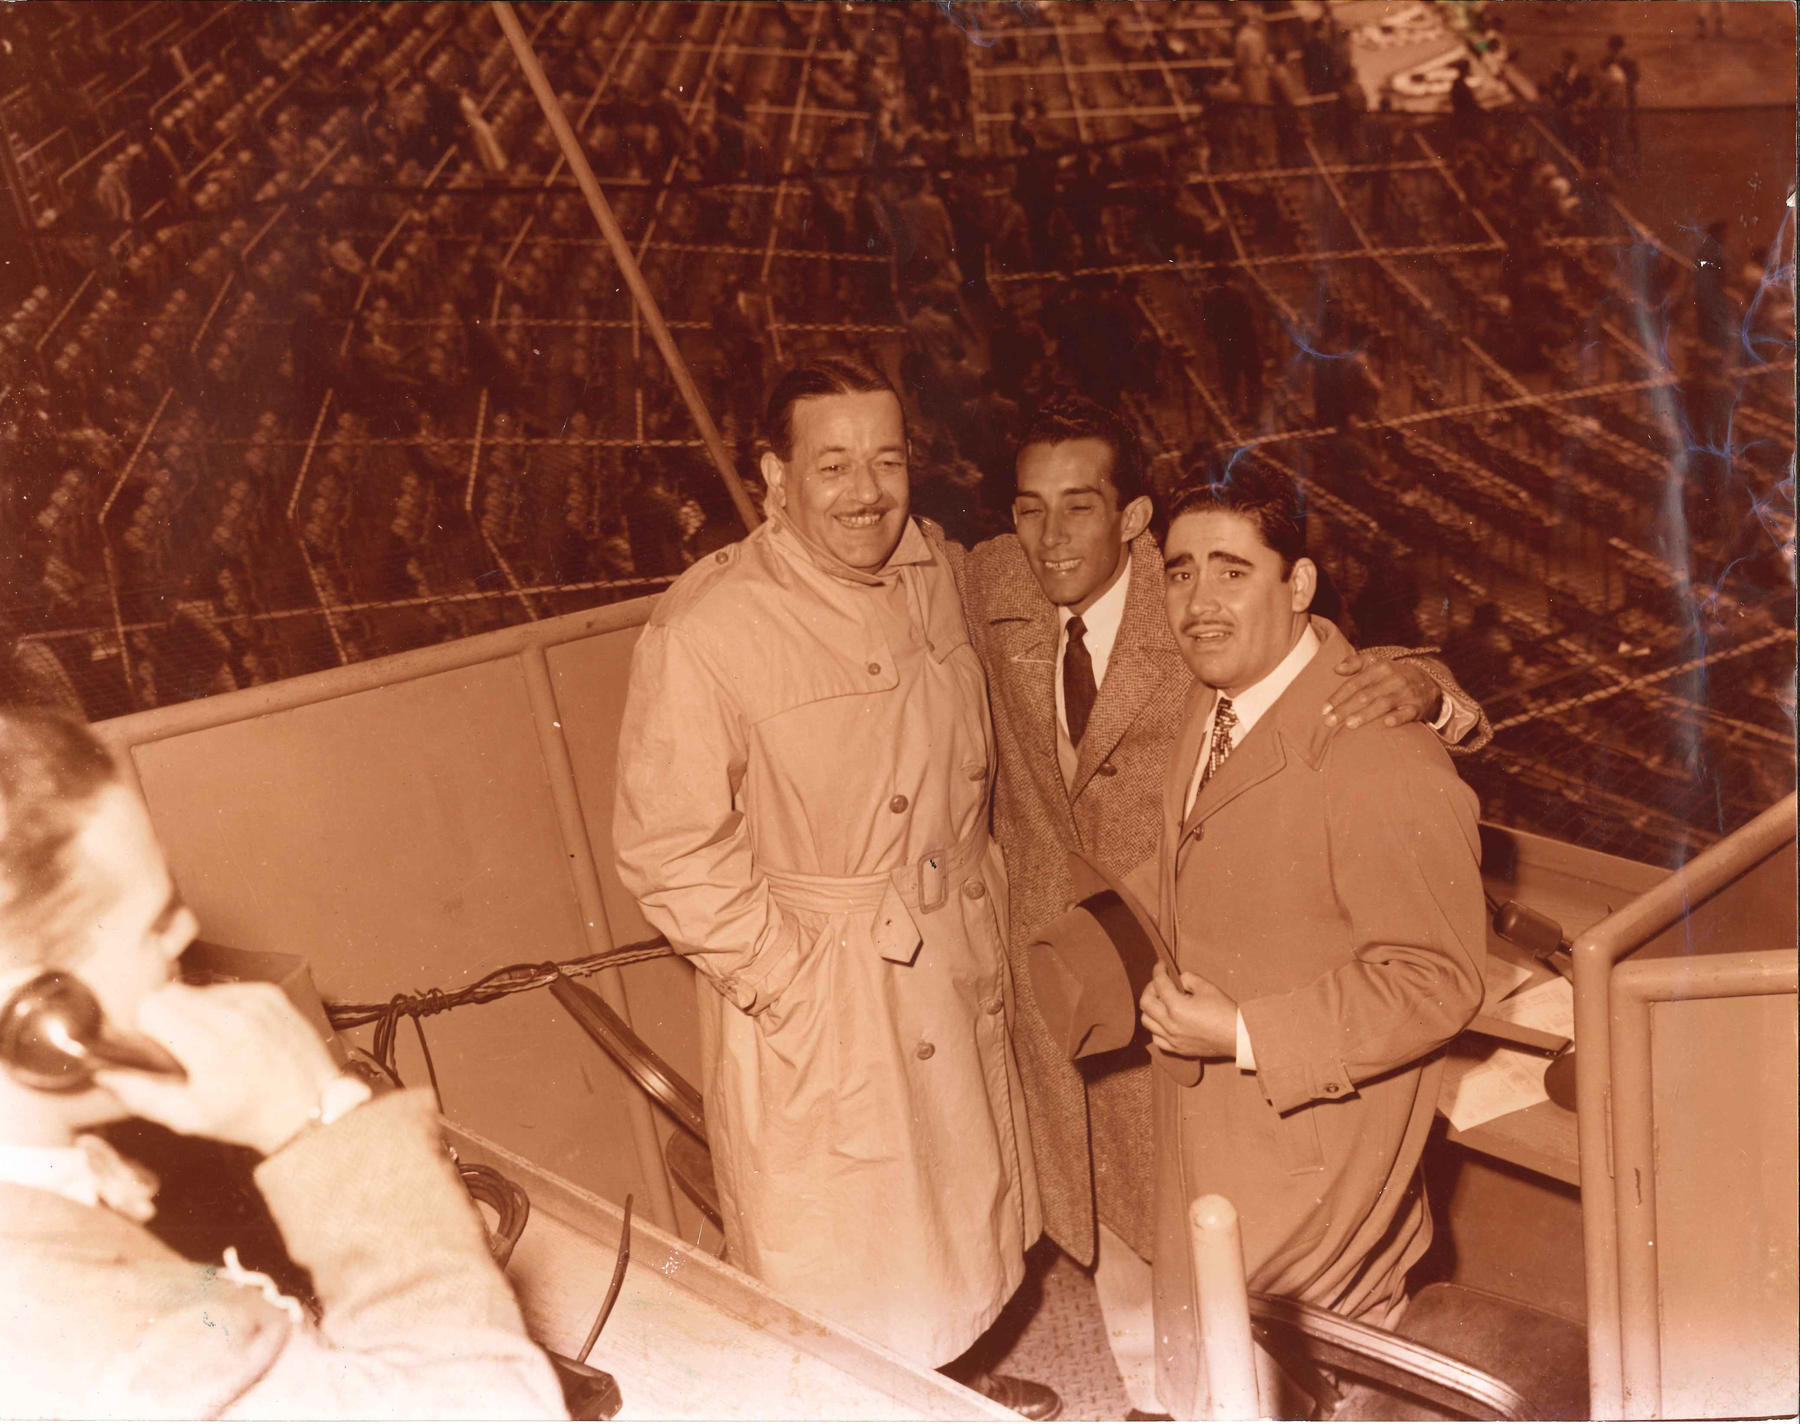 Felo Ramírez (pictured far right) began his broadcasting career in 1945 calling games in Havana, Cuba. He did play-by-play for Cuban Winter League games until the early 1960s. (National Baseball Hall of Fame and Museum)